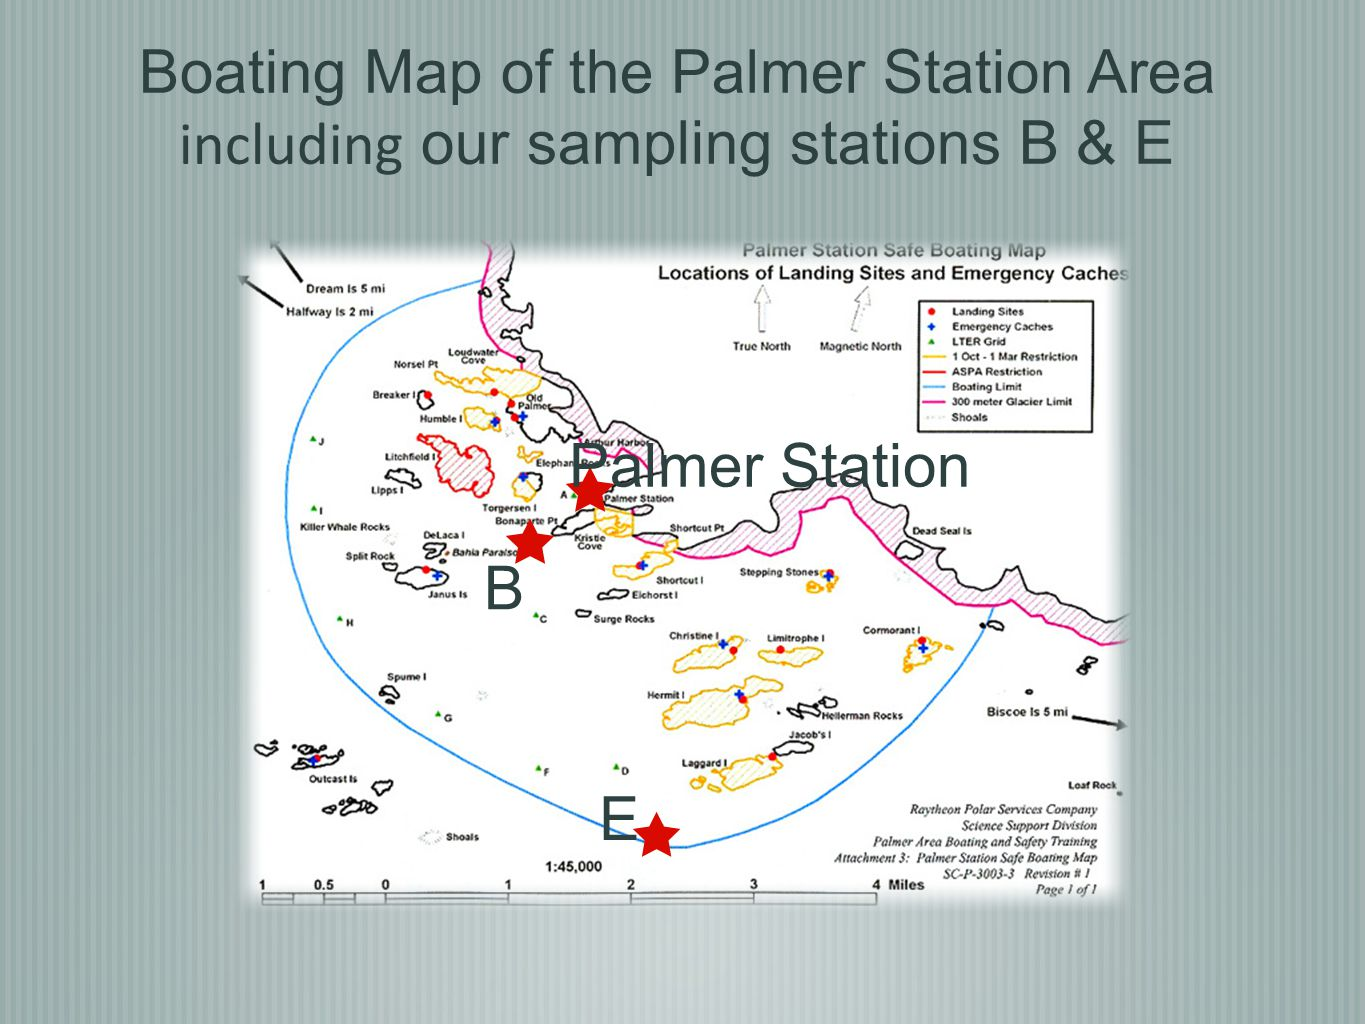 Palmer Station B E Boating Map of the Palmer Station Area including our sampling stations B & E